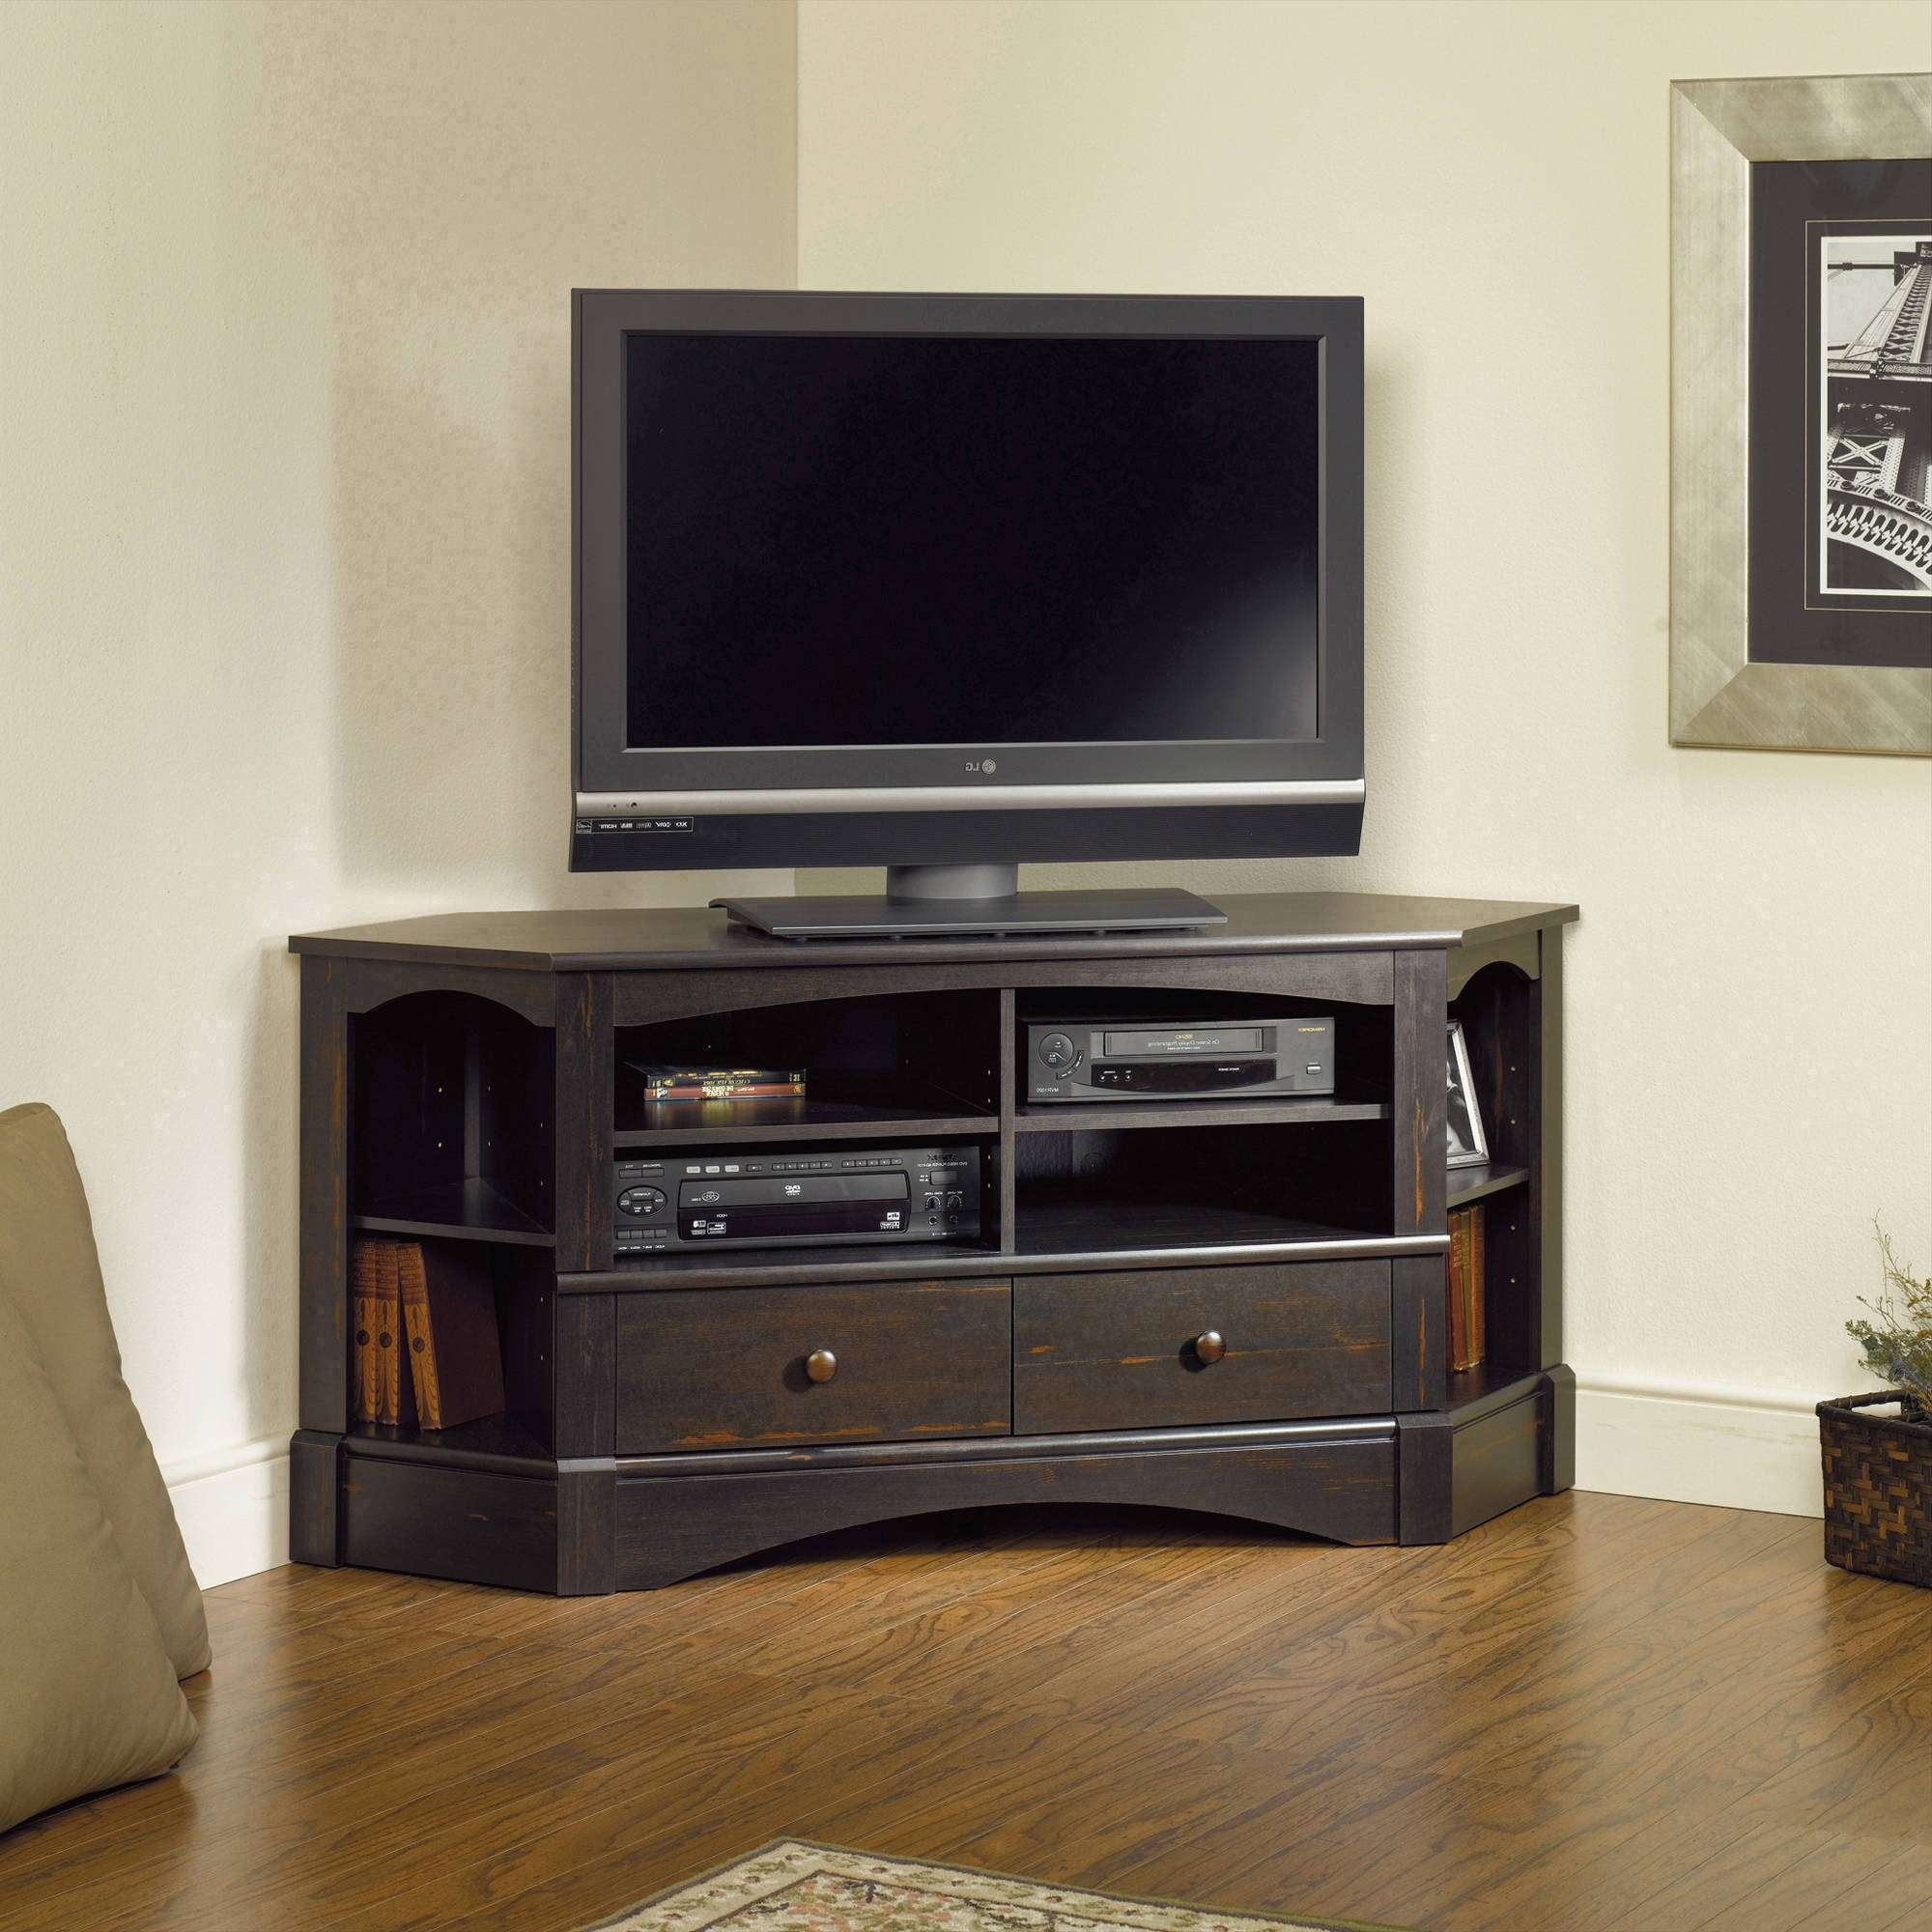 Perfect Corner Tv Stand For 55 Inch Flat Screen 15 On Home Pertaining To Corner Tv Stands For 60 Inch Flat Screens (View 6 of 15)